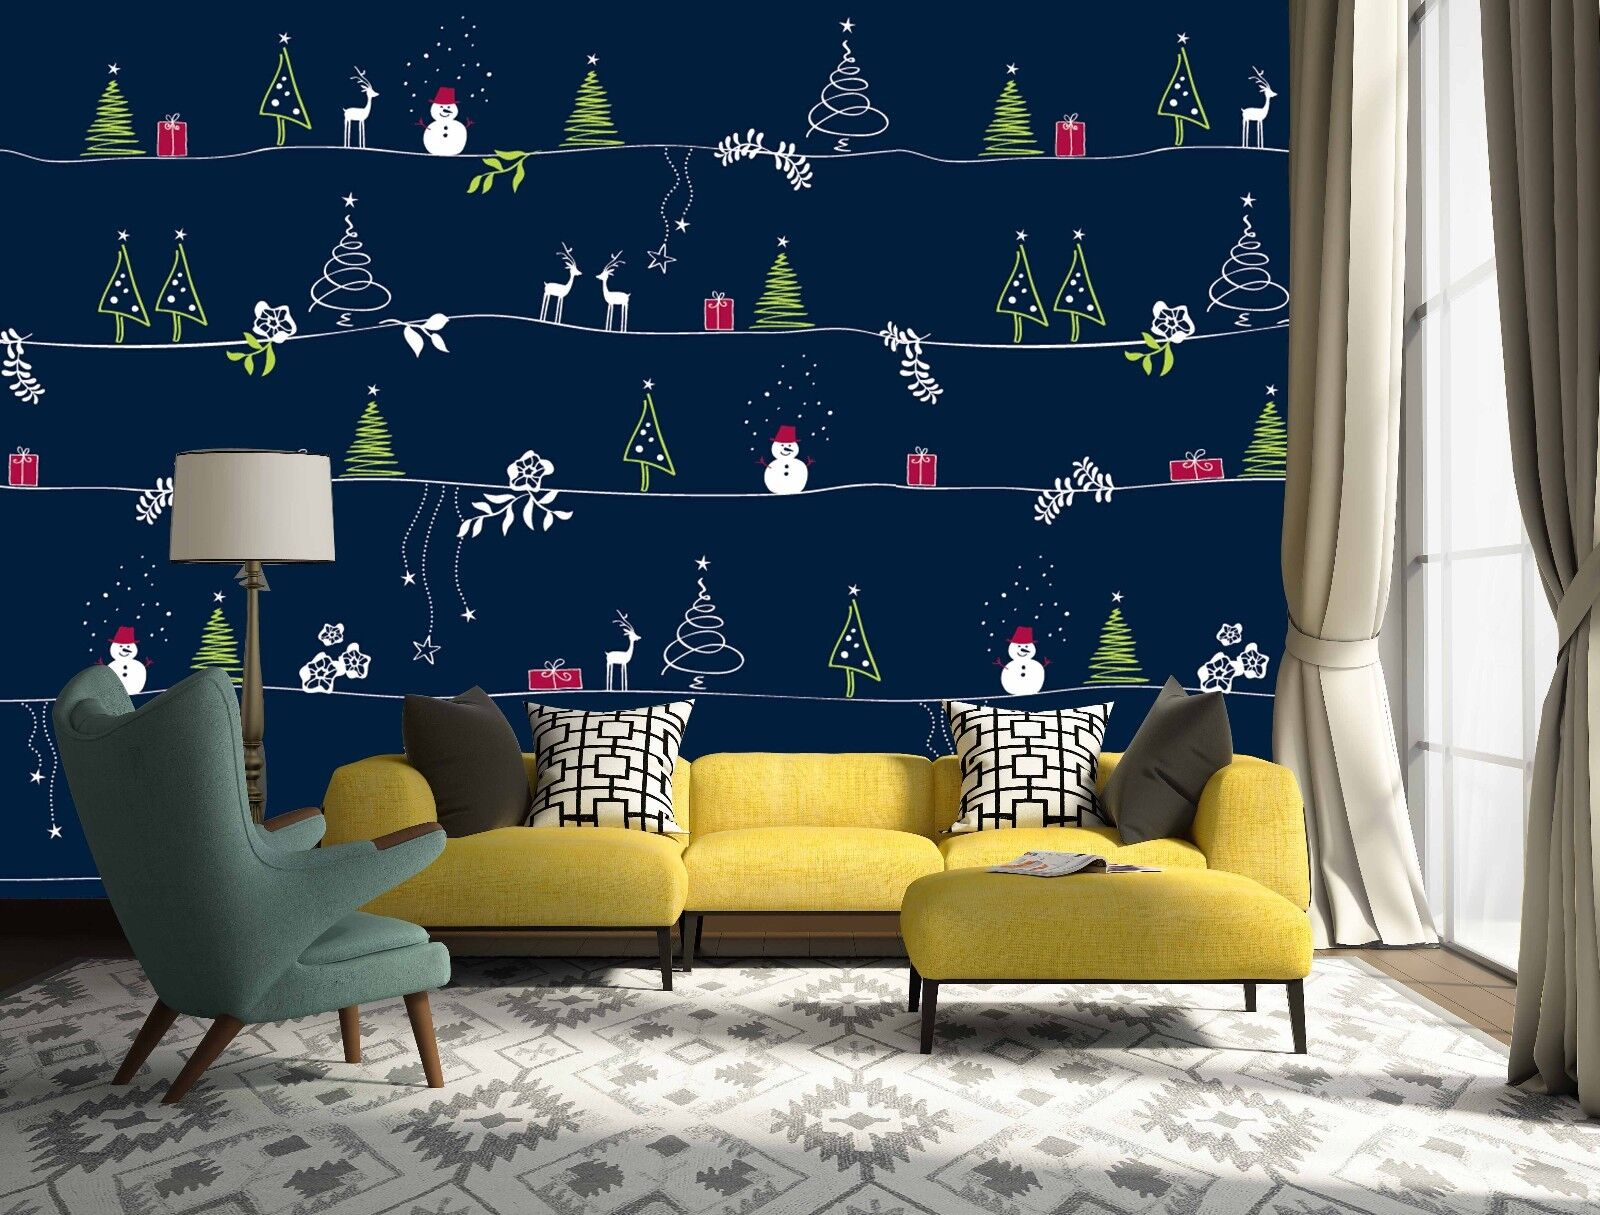 3D Christmas Tree 45 Wallpaper Murals Wall Print Wallpaper Mural AJ WALLPAPER UK